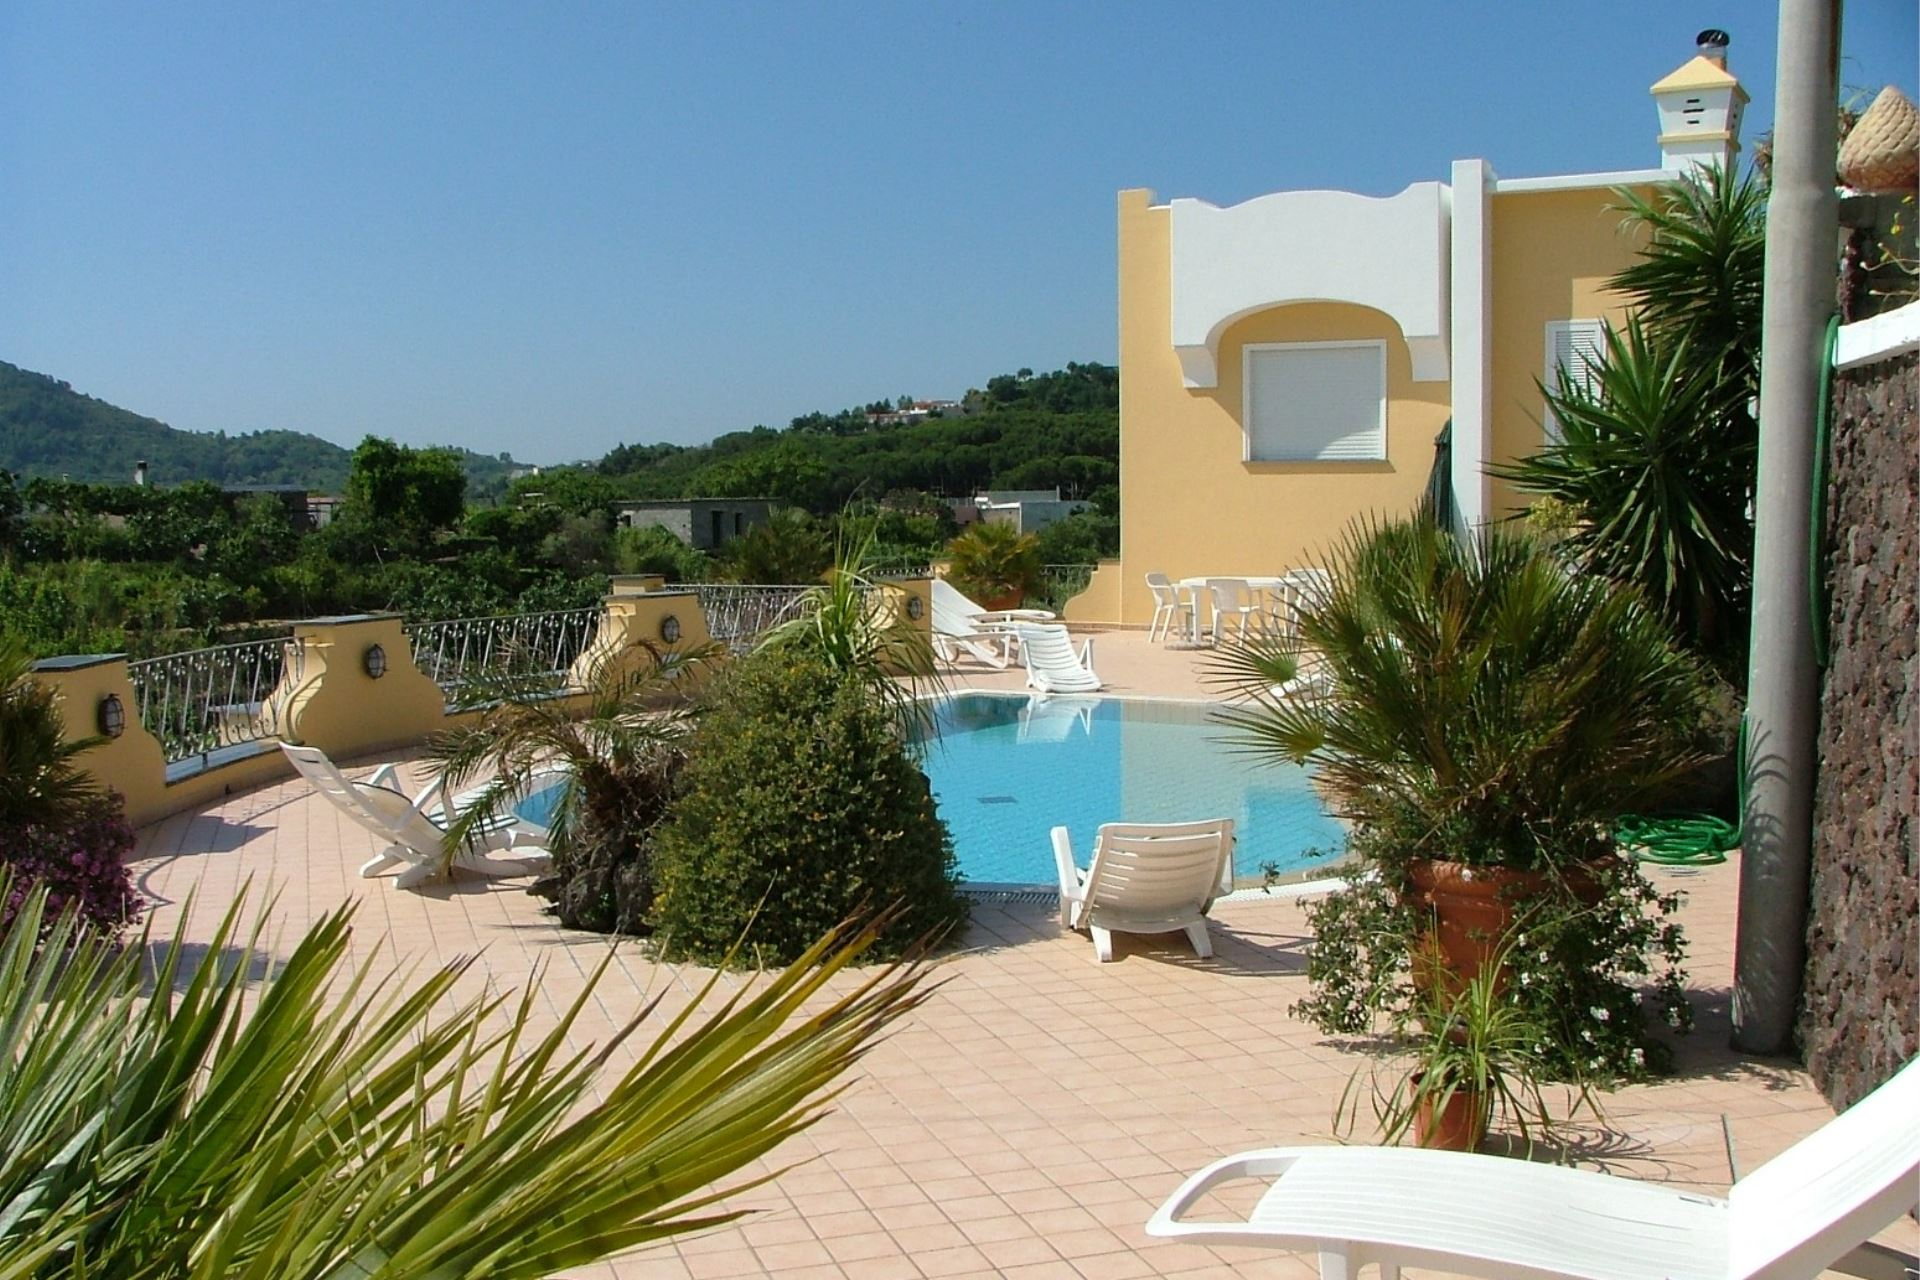 APARTMENTS WITH POOL CITARA BARANO D'ISCHIA CAMPANIA